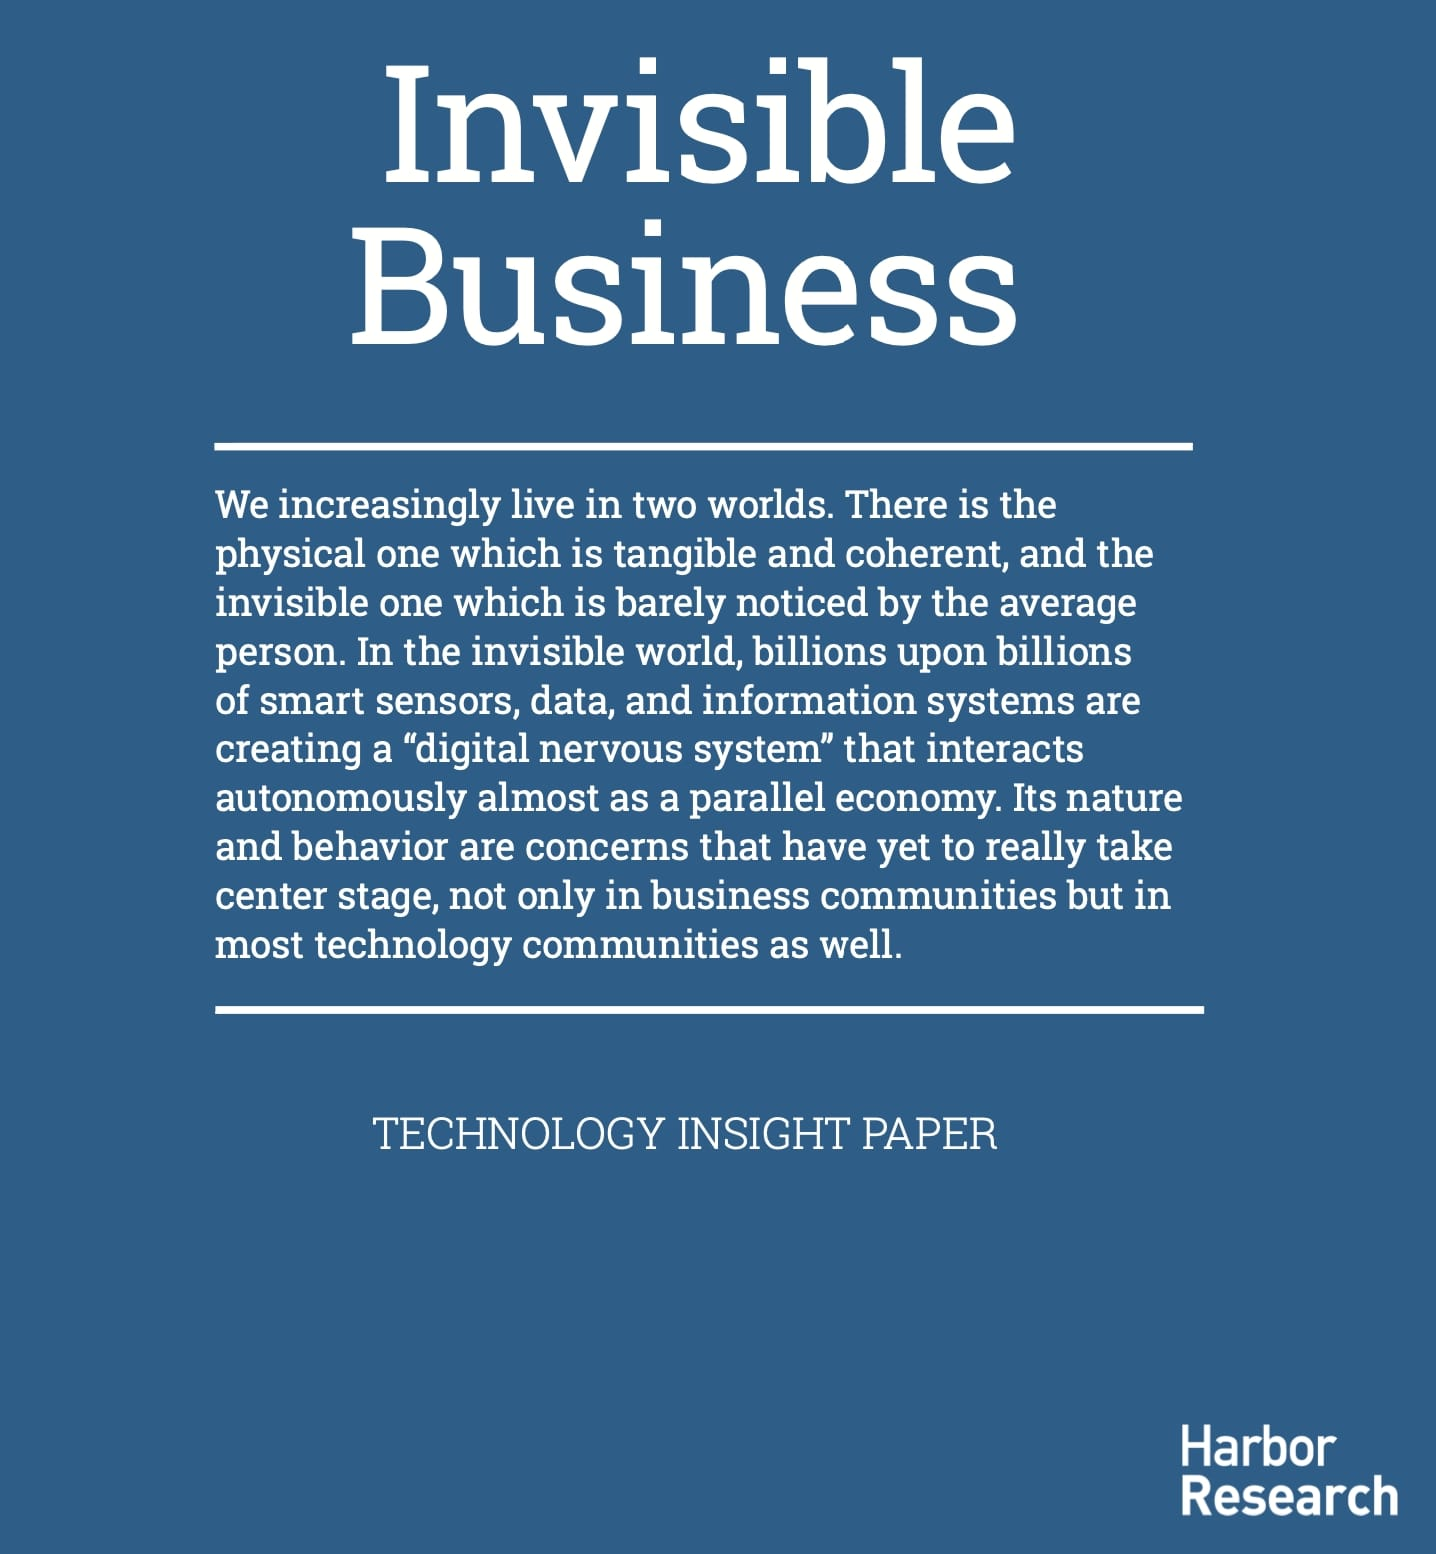 Invisible Business paper cover